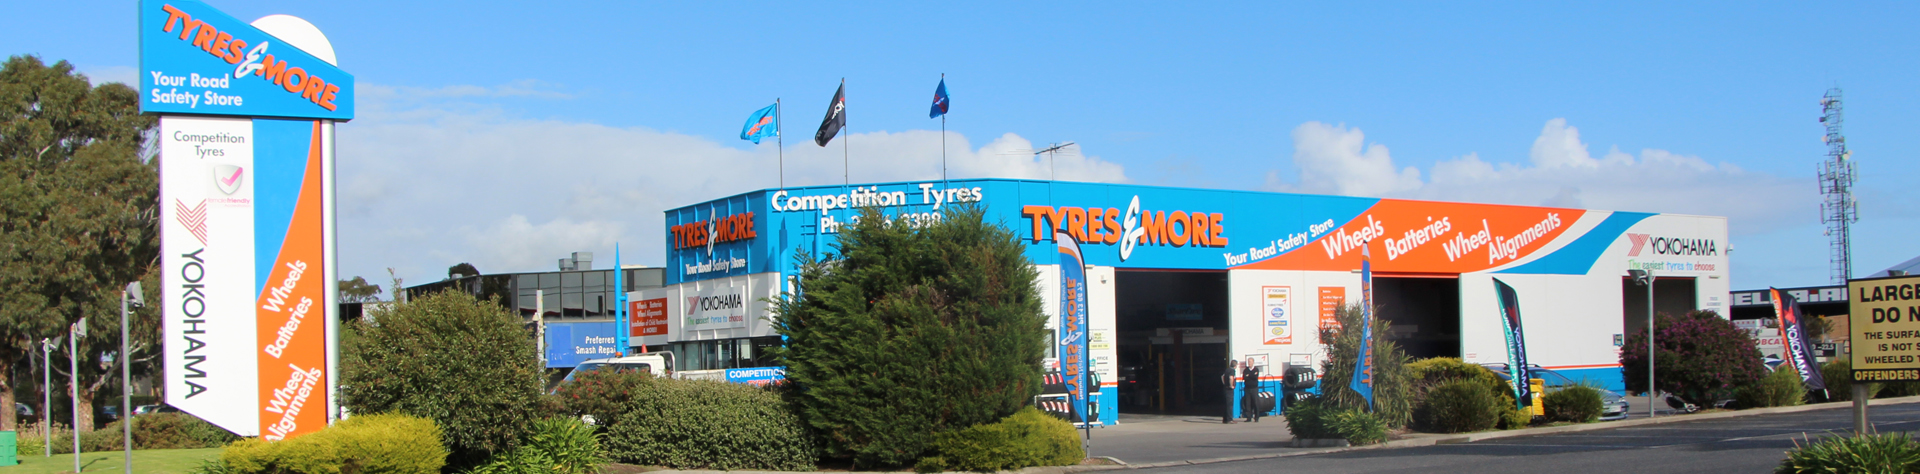 Competition Tyres & More Hallam store image